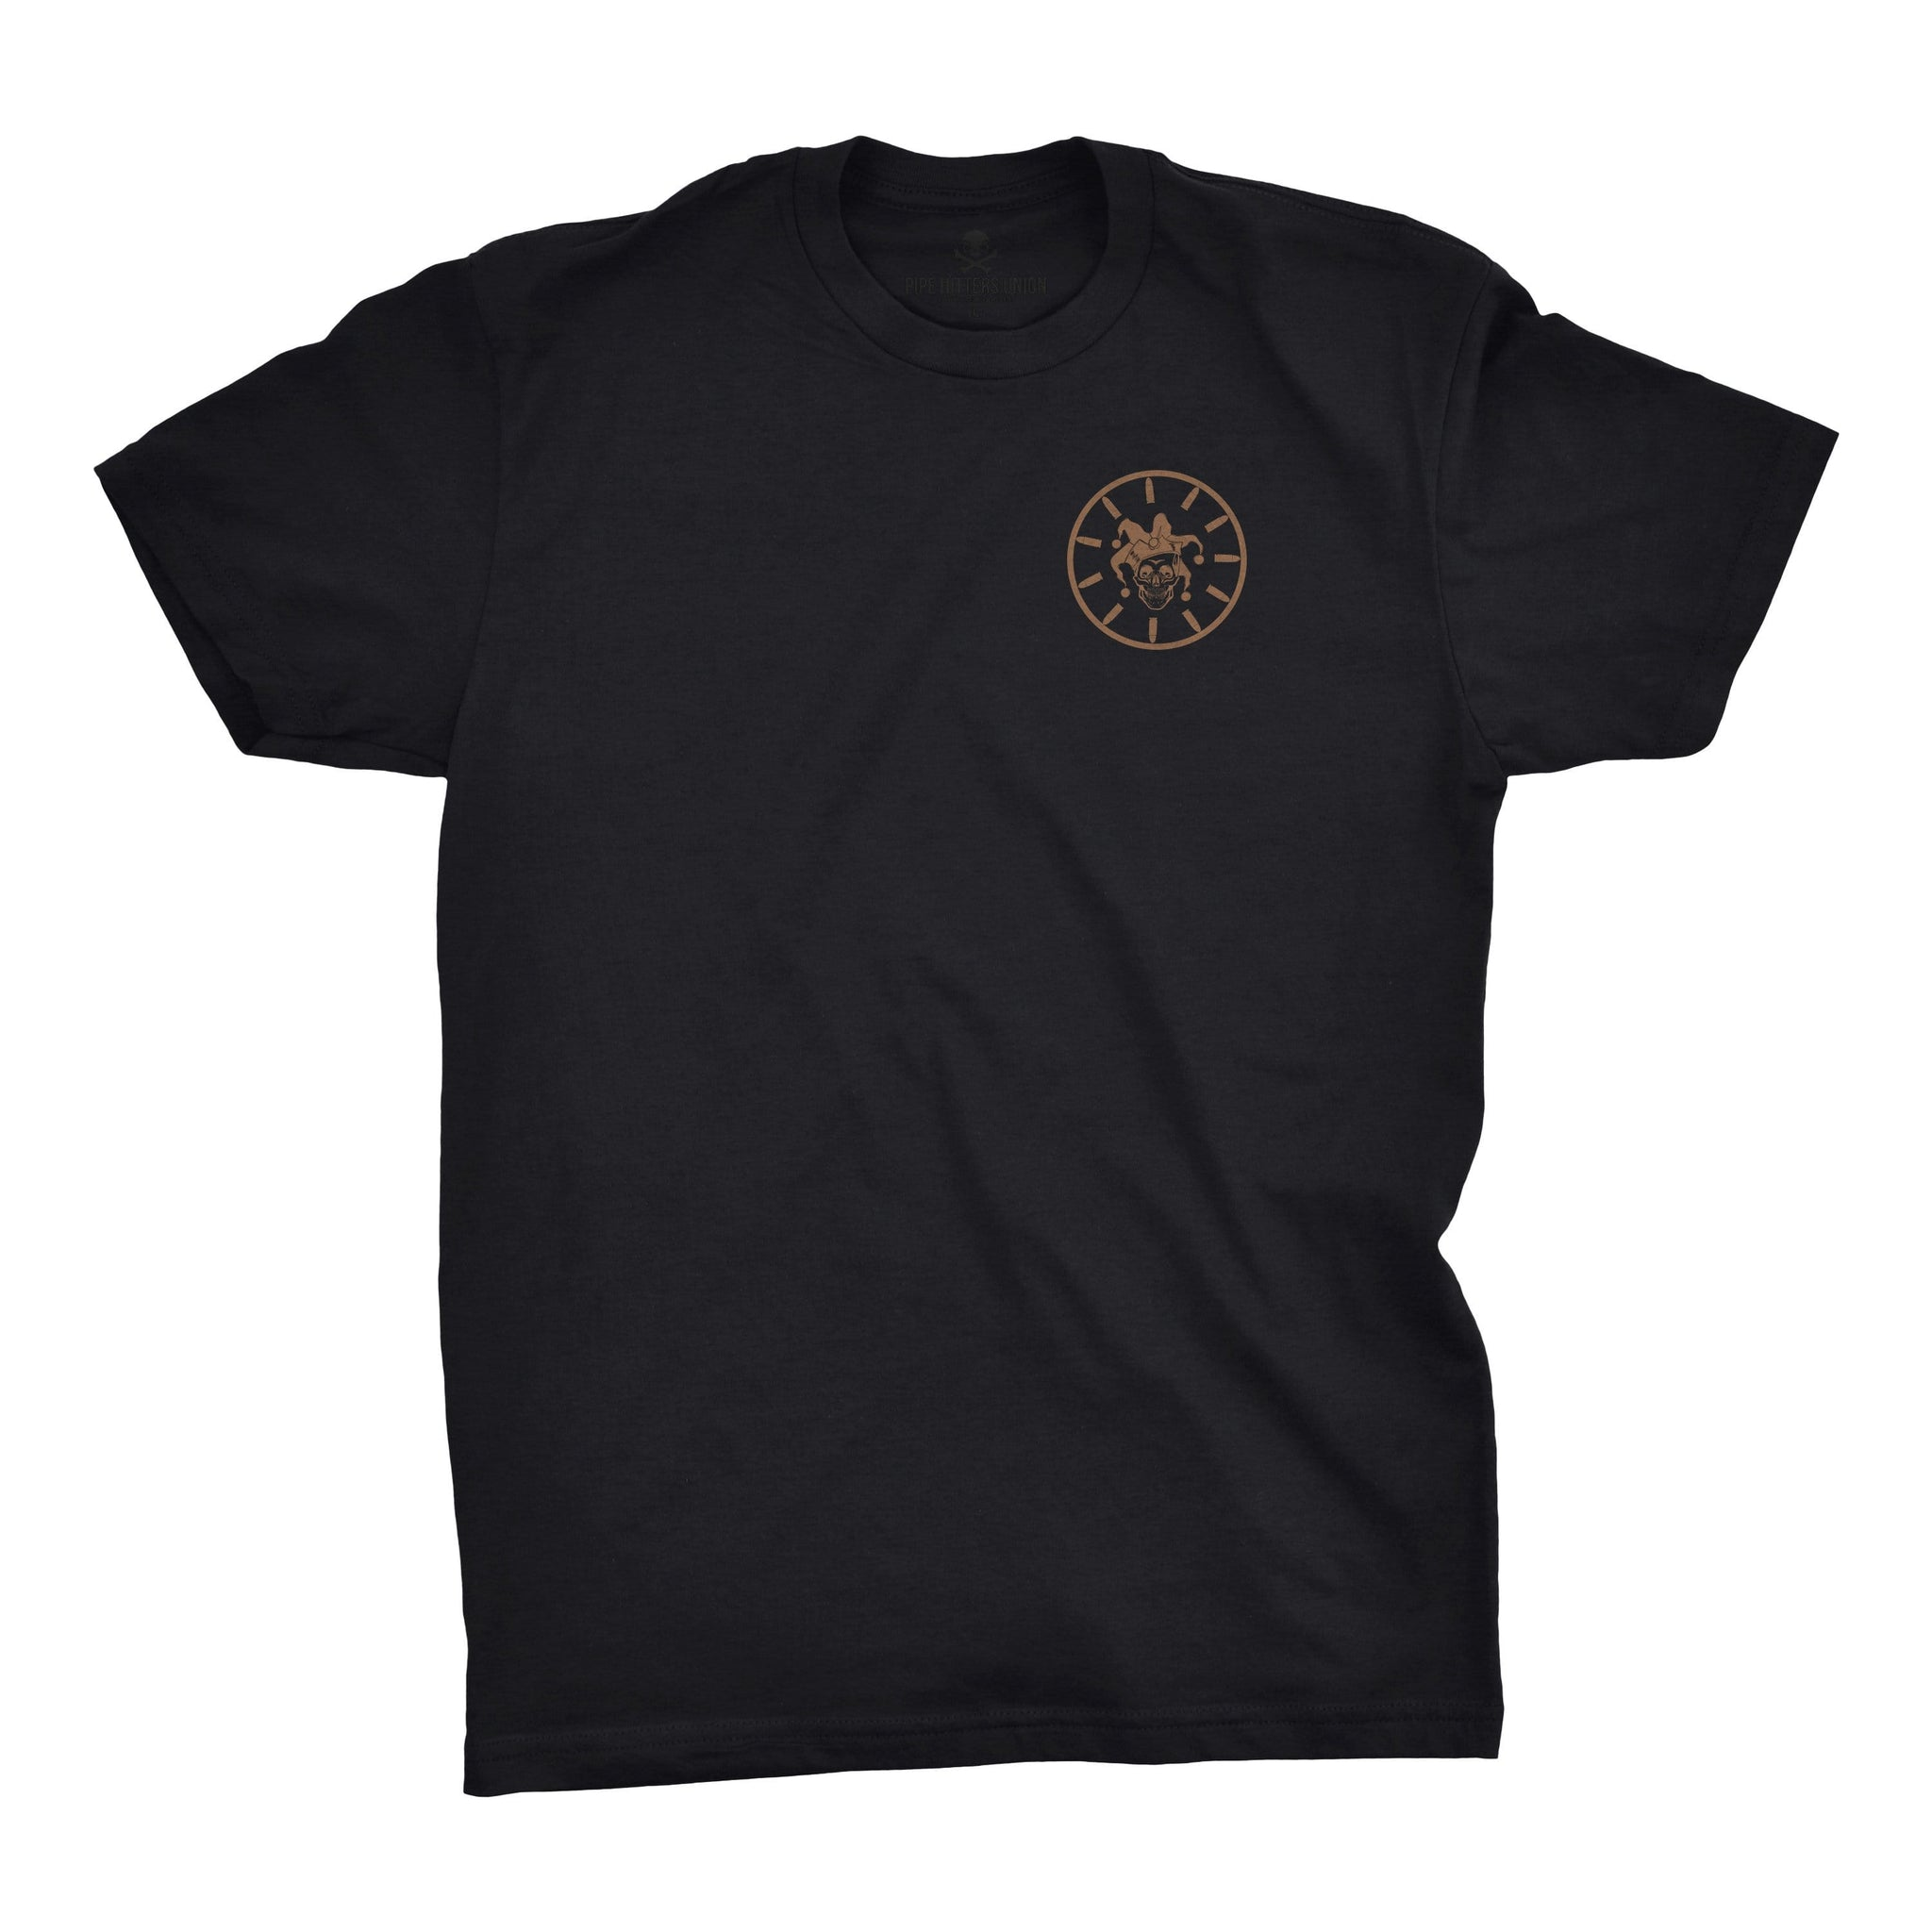 PHUMC Jesters Chapter Tee - Black - T-Shirts - Pipe Hitters Union